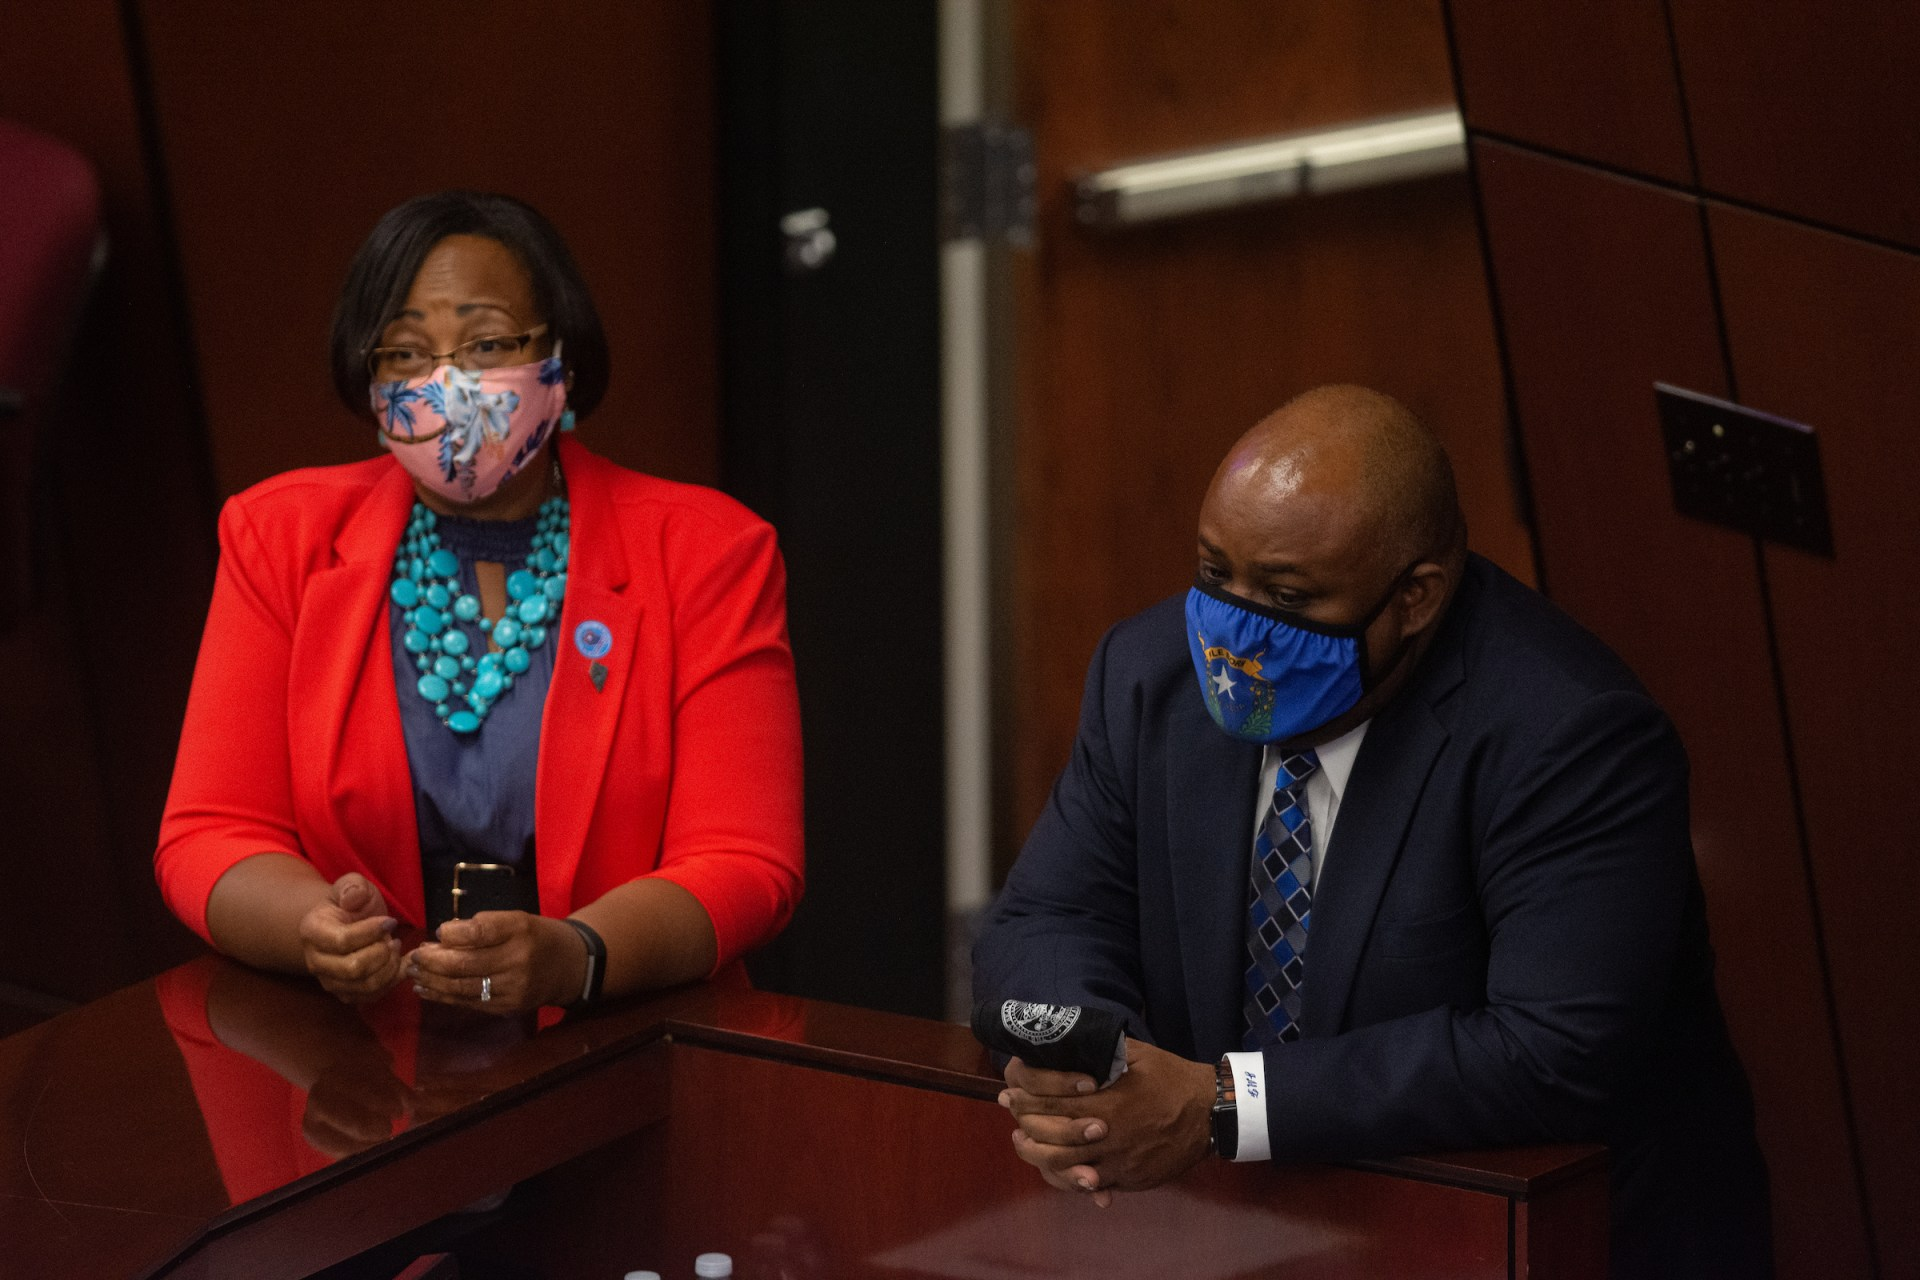 Assembly Assistant Majority Floor Leader Daniele Monroe-Moreno, left, and Assembly speaker Jason Frierson on Friday, July 31, 2020 during the first day of the 32nd Special Session of the Legislature in Carson City. (David Calvert/Nevada Independent)